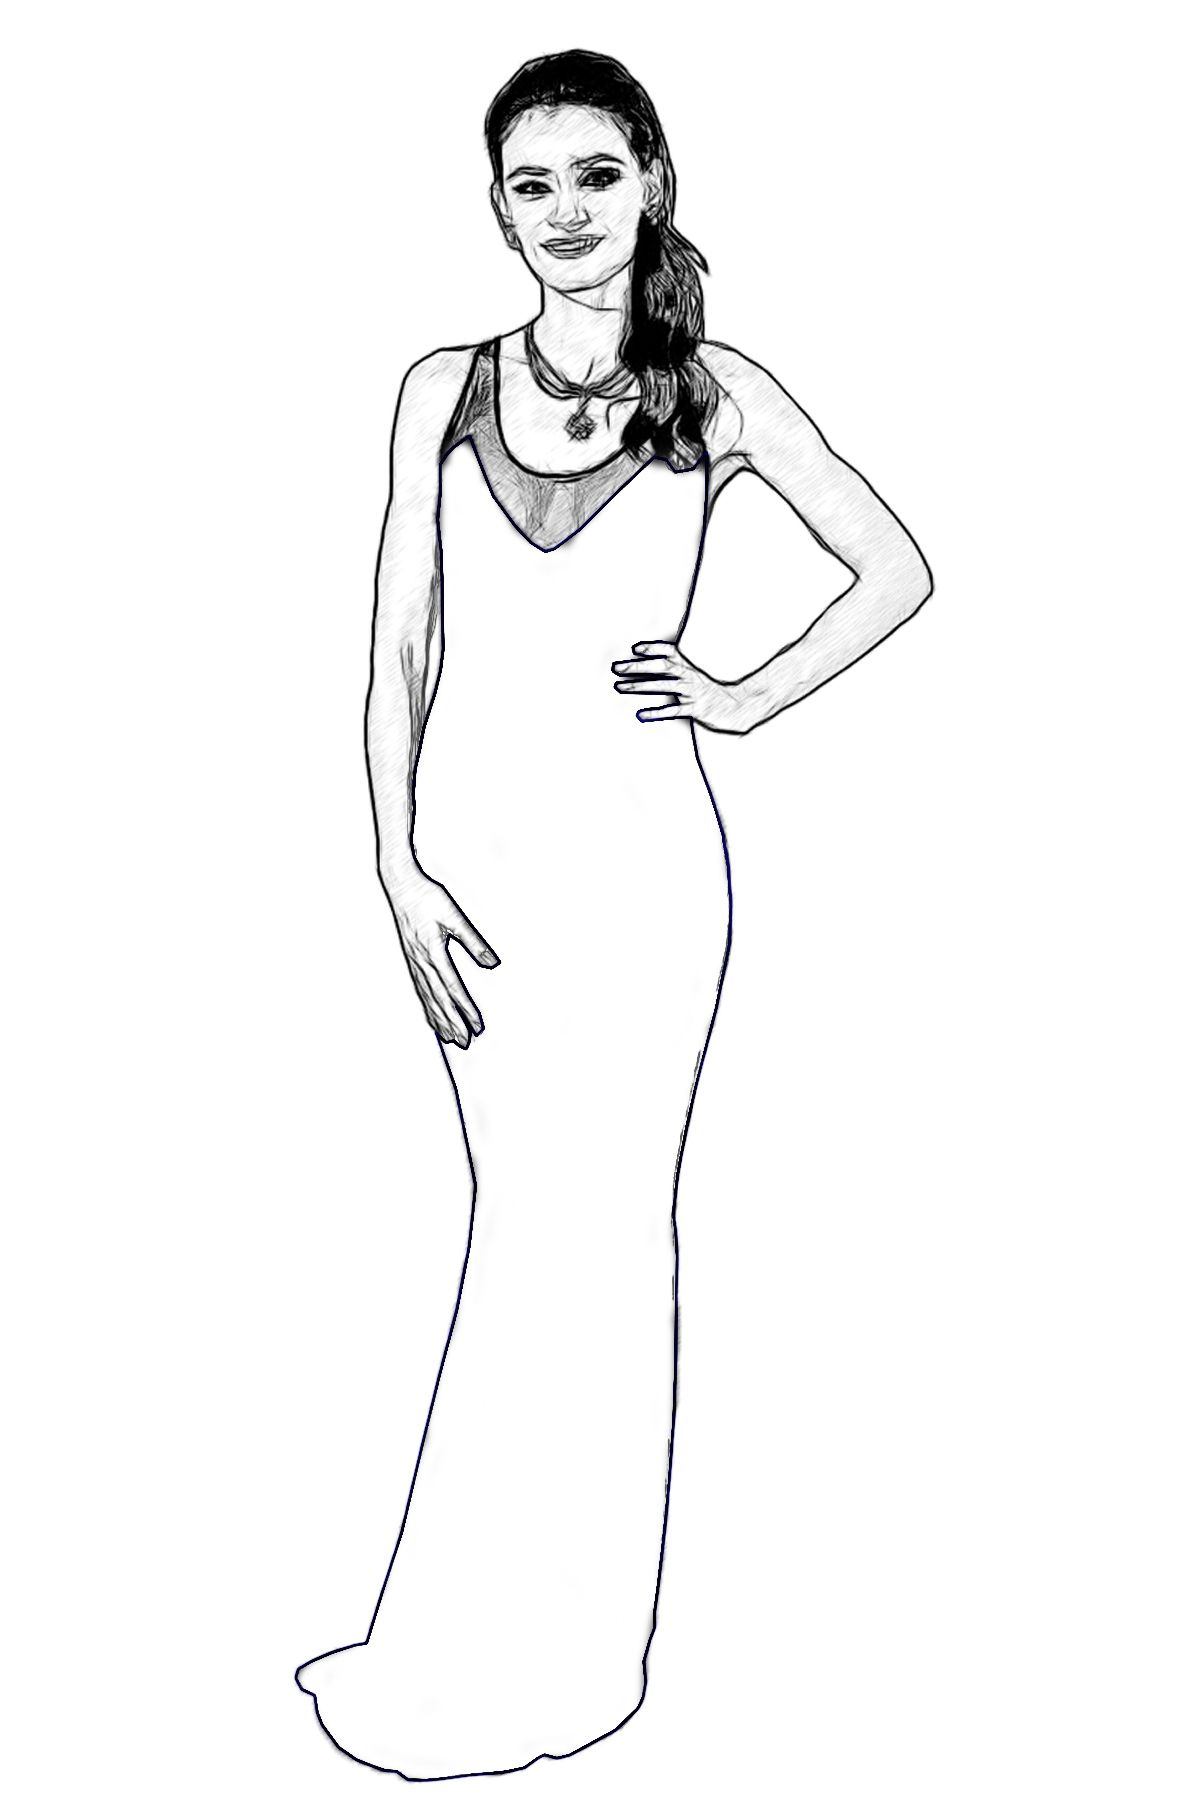 Penelope Cruz Celebrity Coloring Page by Dan Newburn. | Colouring Pages